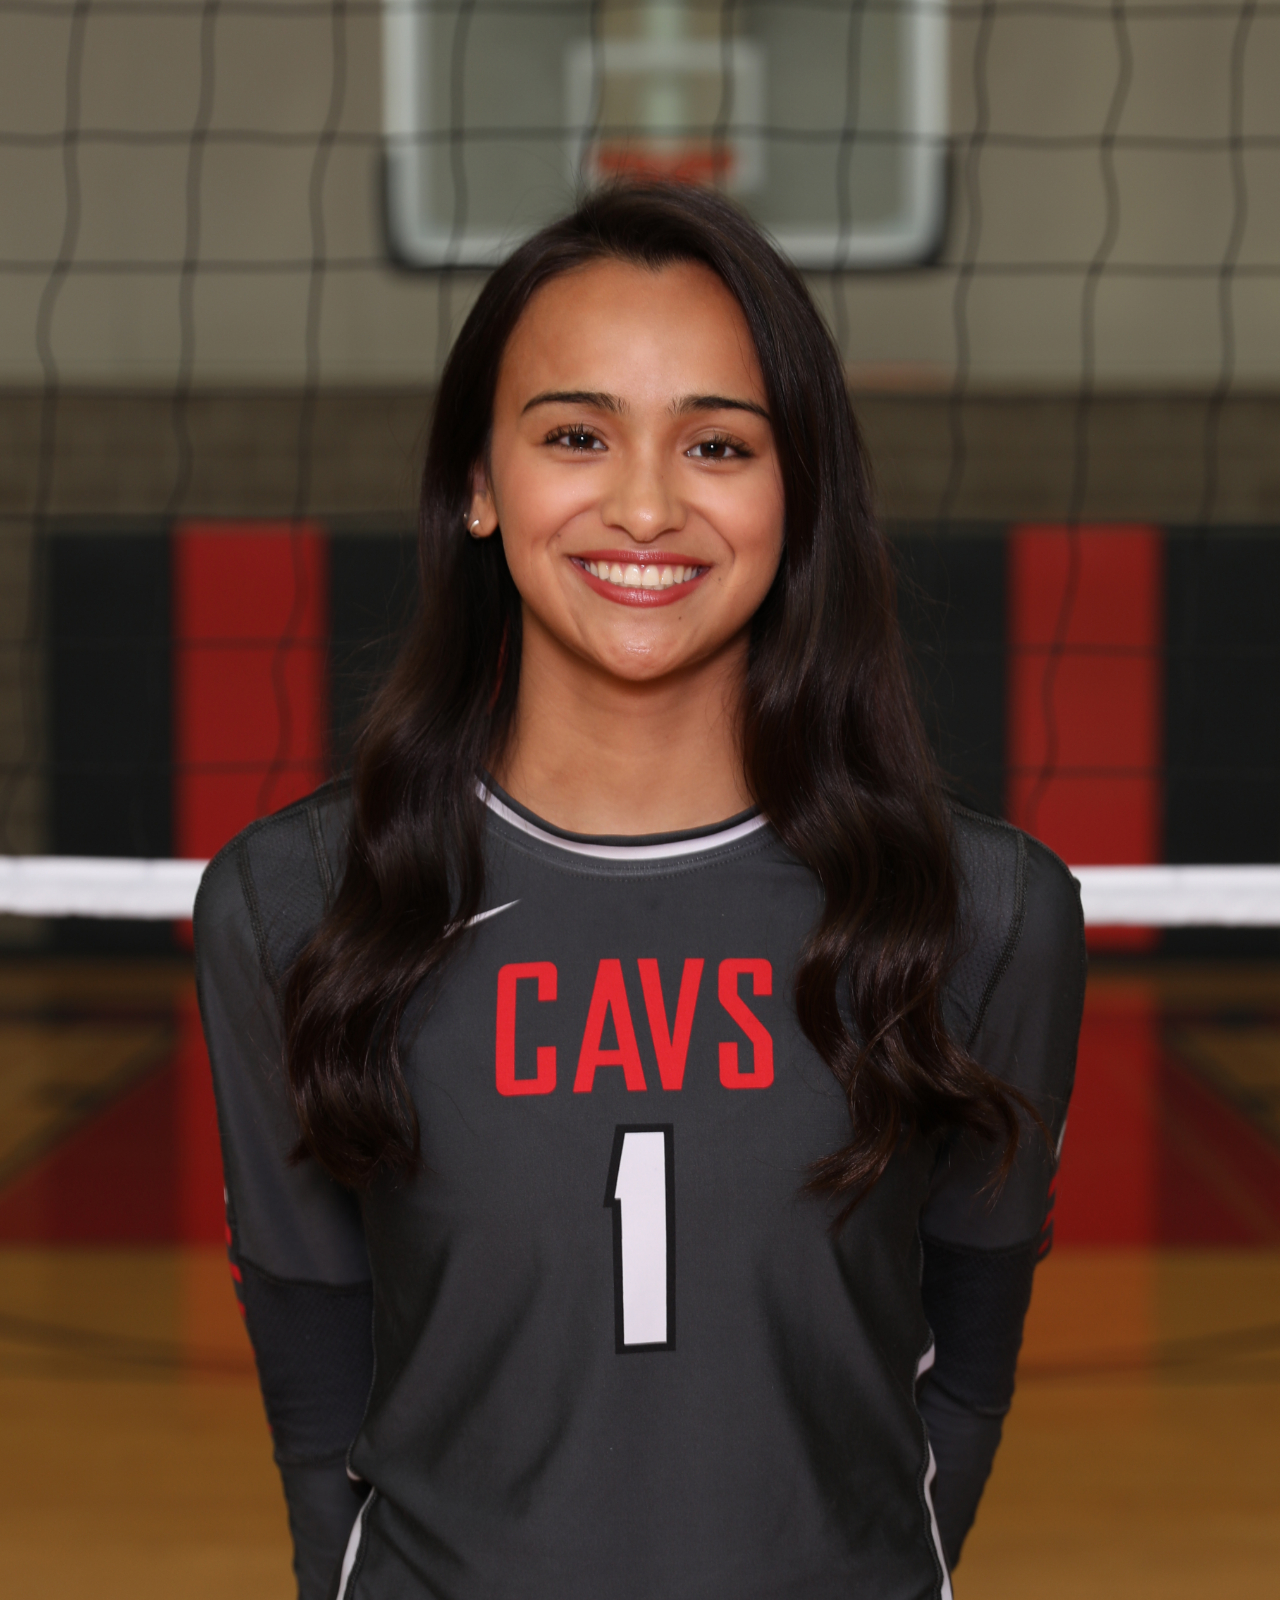 Sun Glow Heating and Cooling Athlete of the Week for September 1st-September 7th